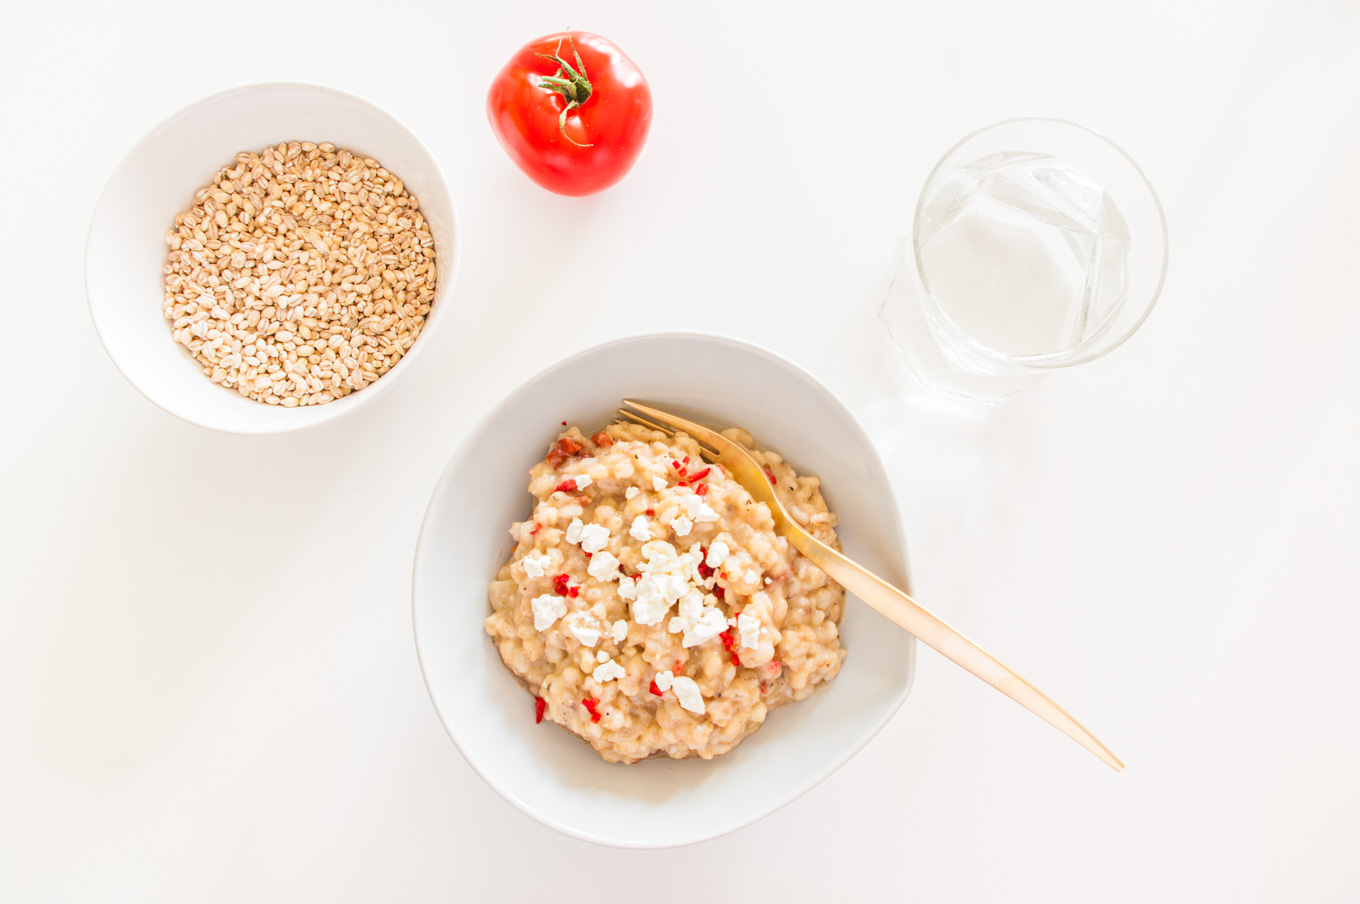 Barley Risotto with Cauliflower and Sun-dried Tomato – A healthy, no-stir risotto recipe using wholegrain barley with a creamy cauliflower sauce and tangy tomatoes. A nutritious vegetarian dinner. By @deliciouscratch | deliciousfromscratch.com